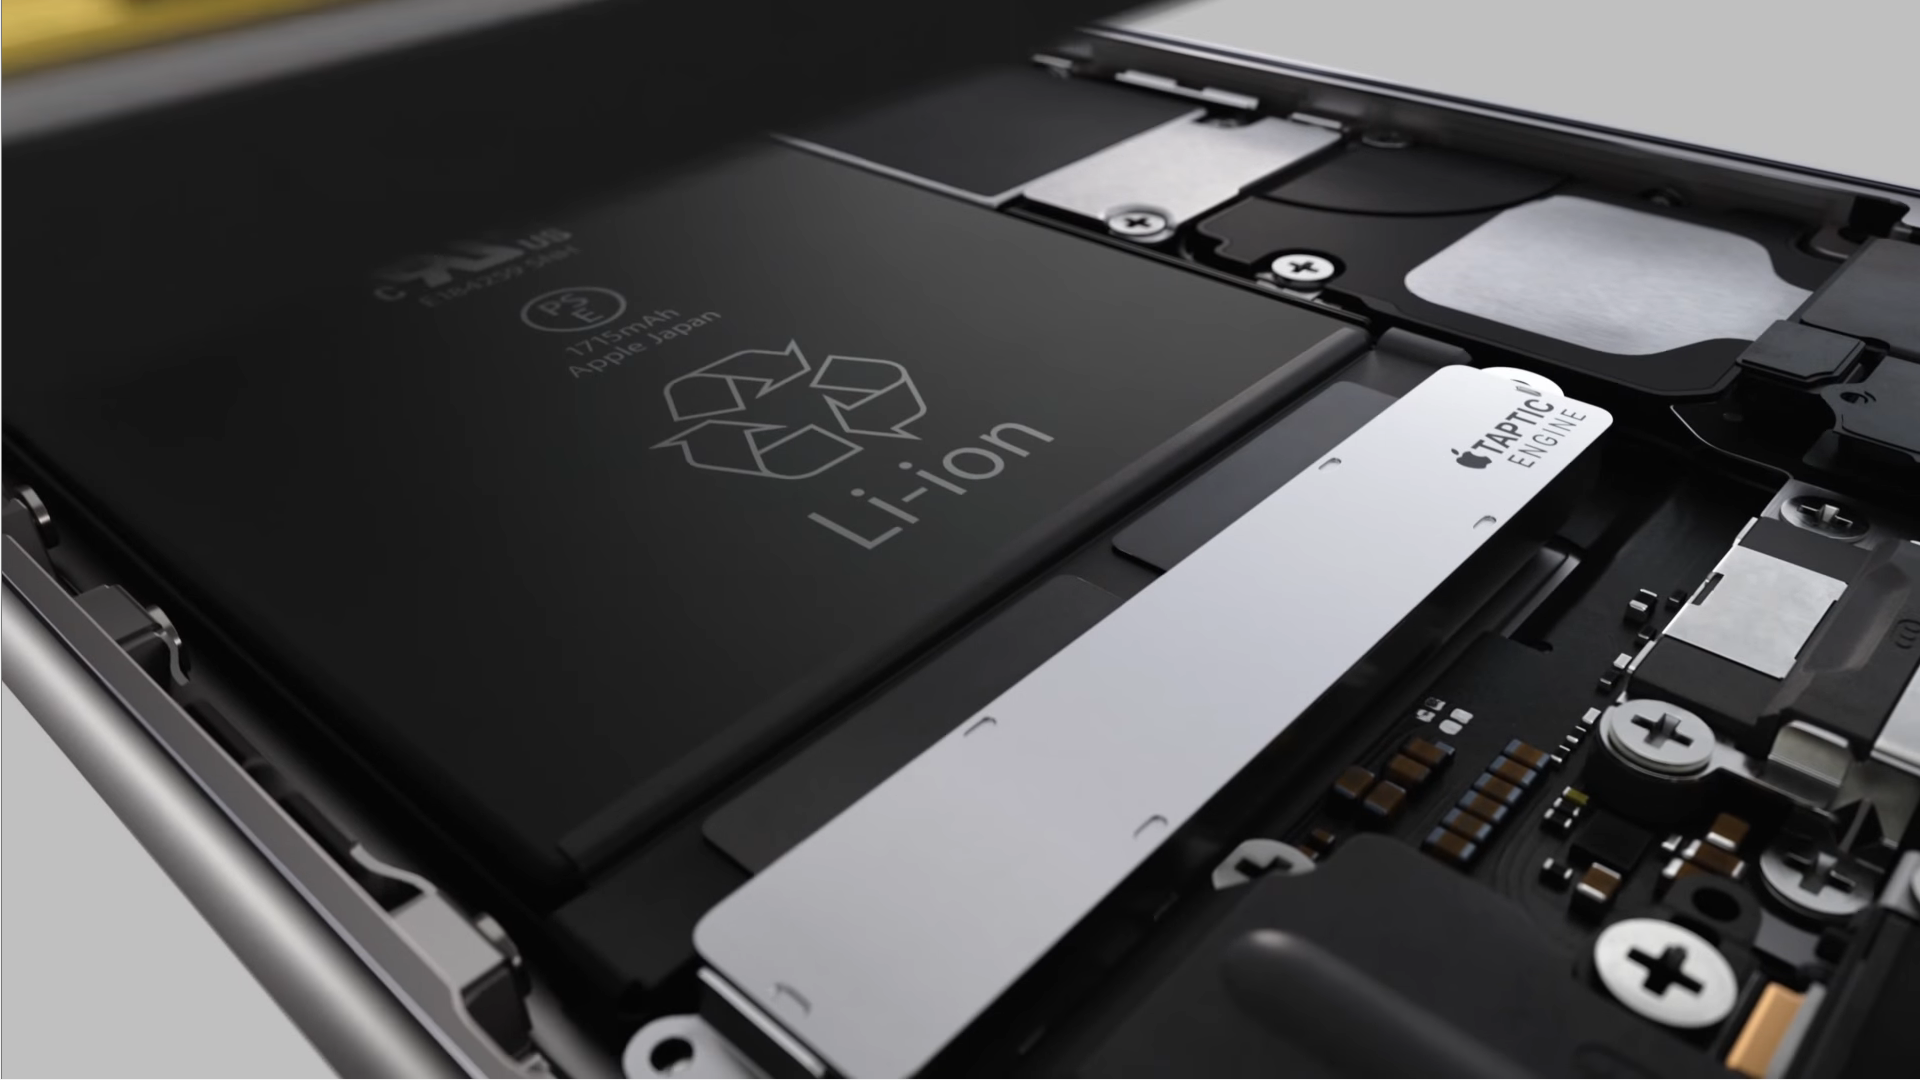 Case Design oneplus one phone case : Appleu2019s 3D Touch video reveals the reduced battery capacity of the ...